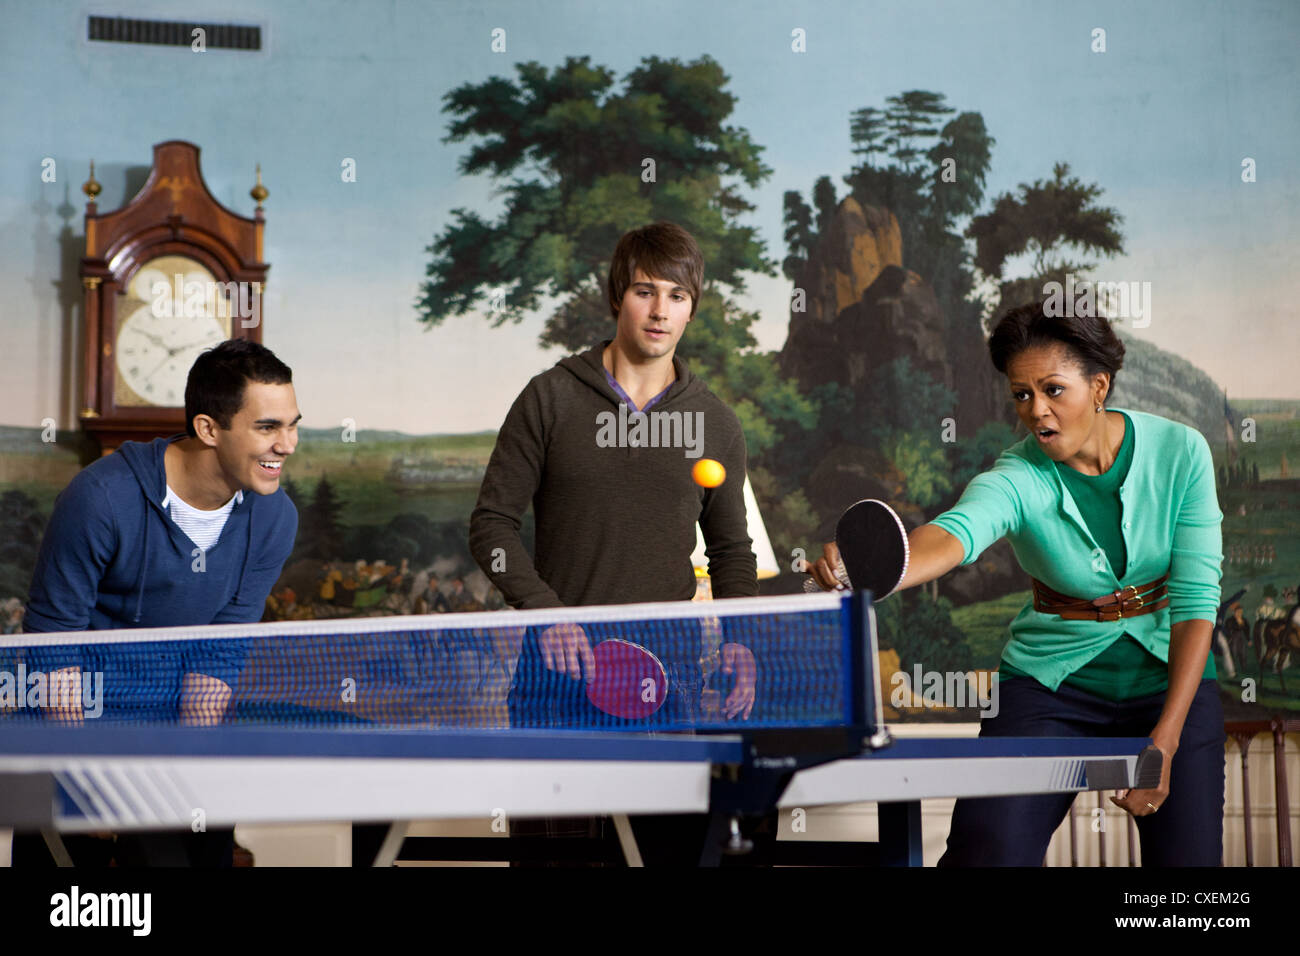 First Lady Michelle Obama plays table tennis with members of the band Big Time Rush September 24, 2011 in the Diplomatic - Stock Image